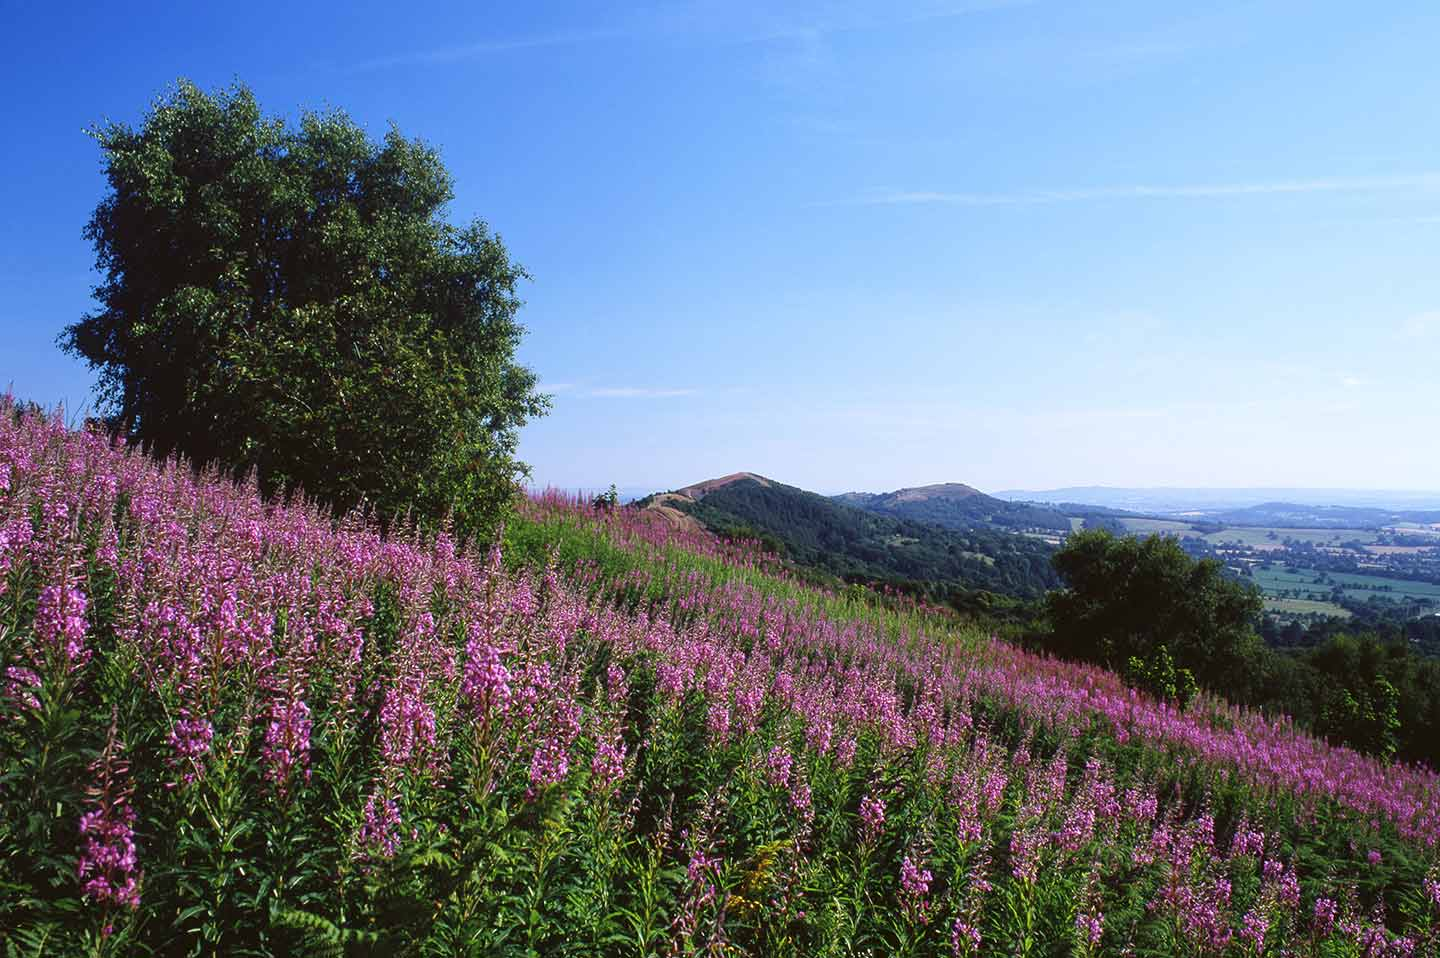 Image of the Malvern Hills in summer